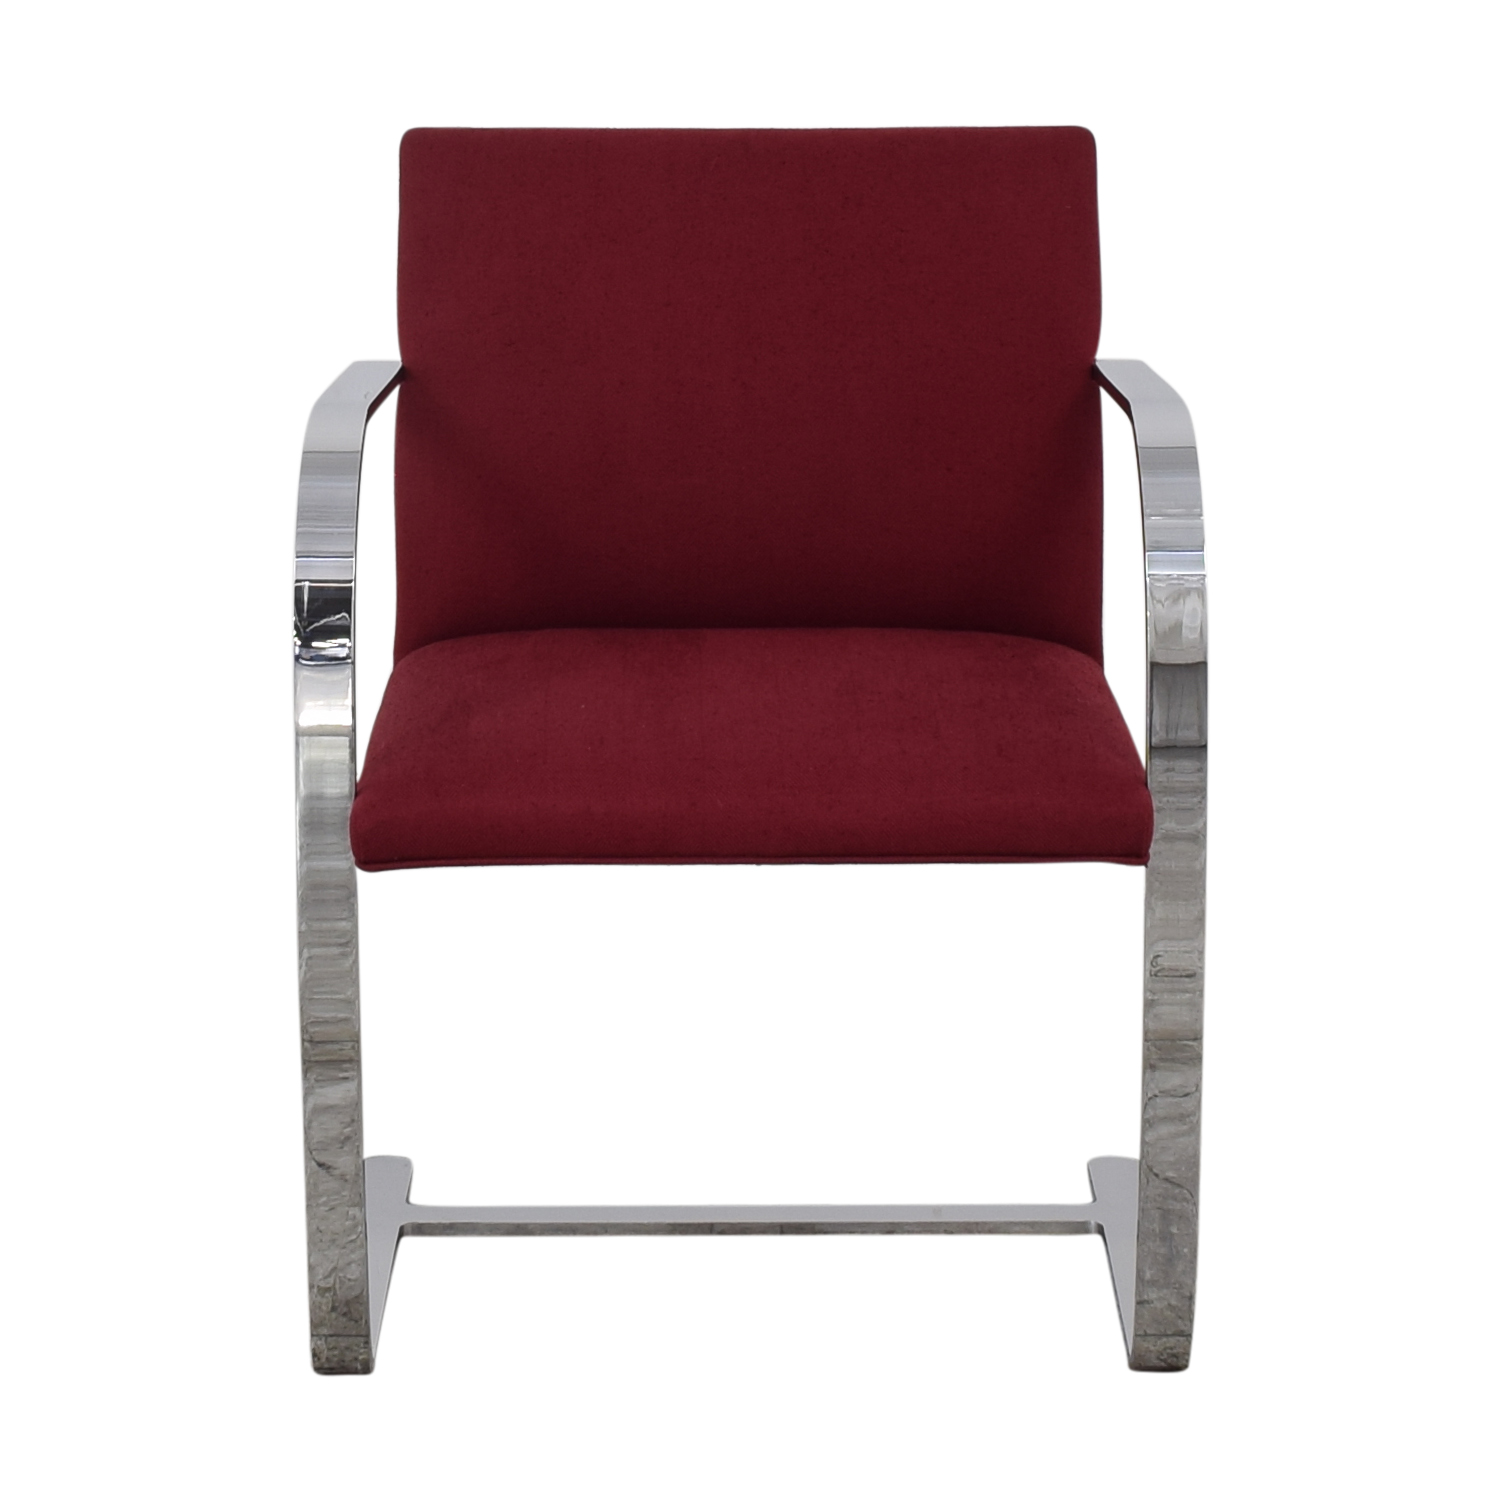 Knoll Knoll BRNO Chair with Flat Bar Frame nj